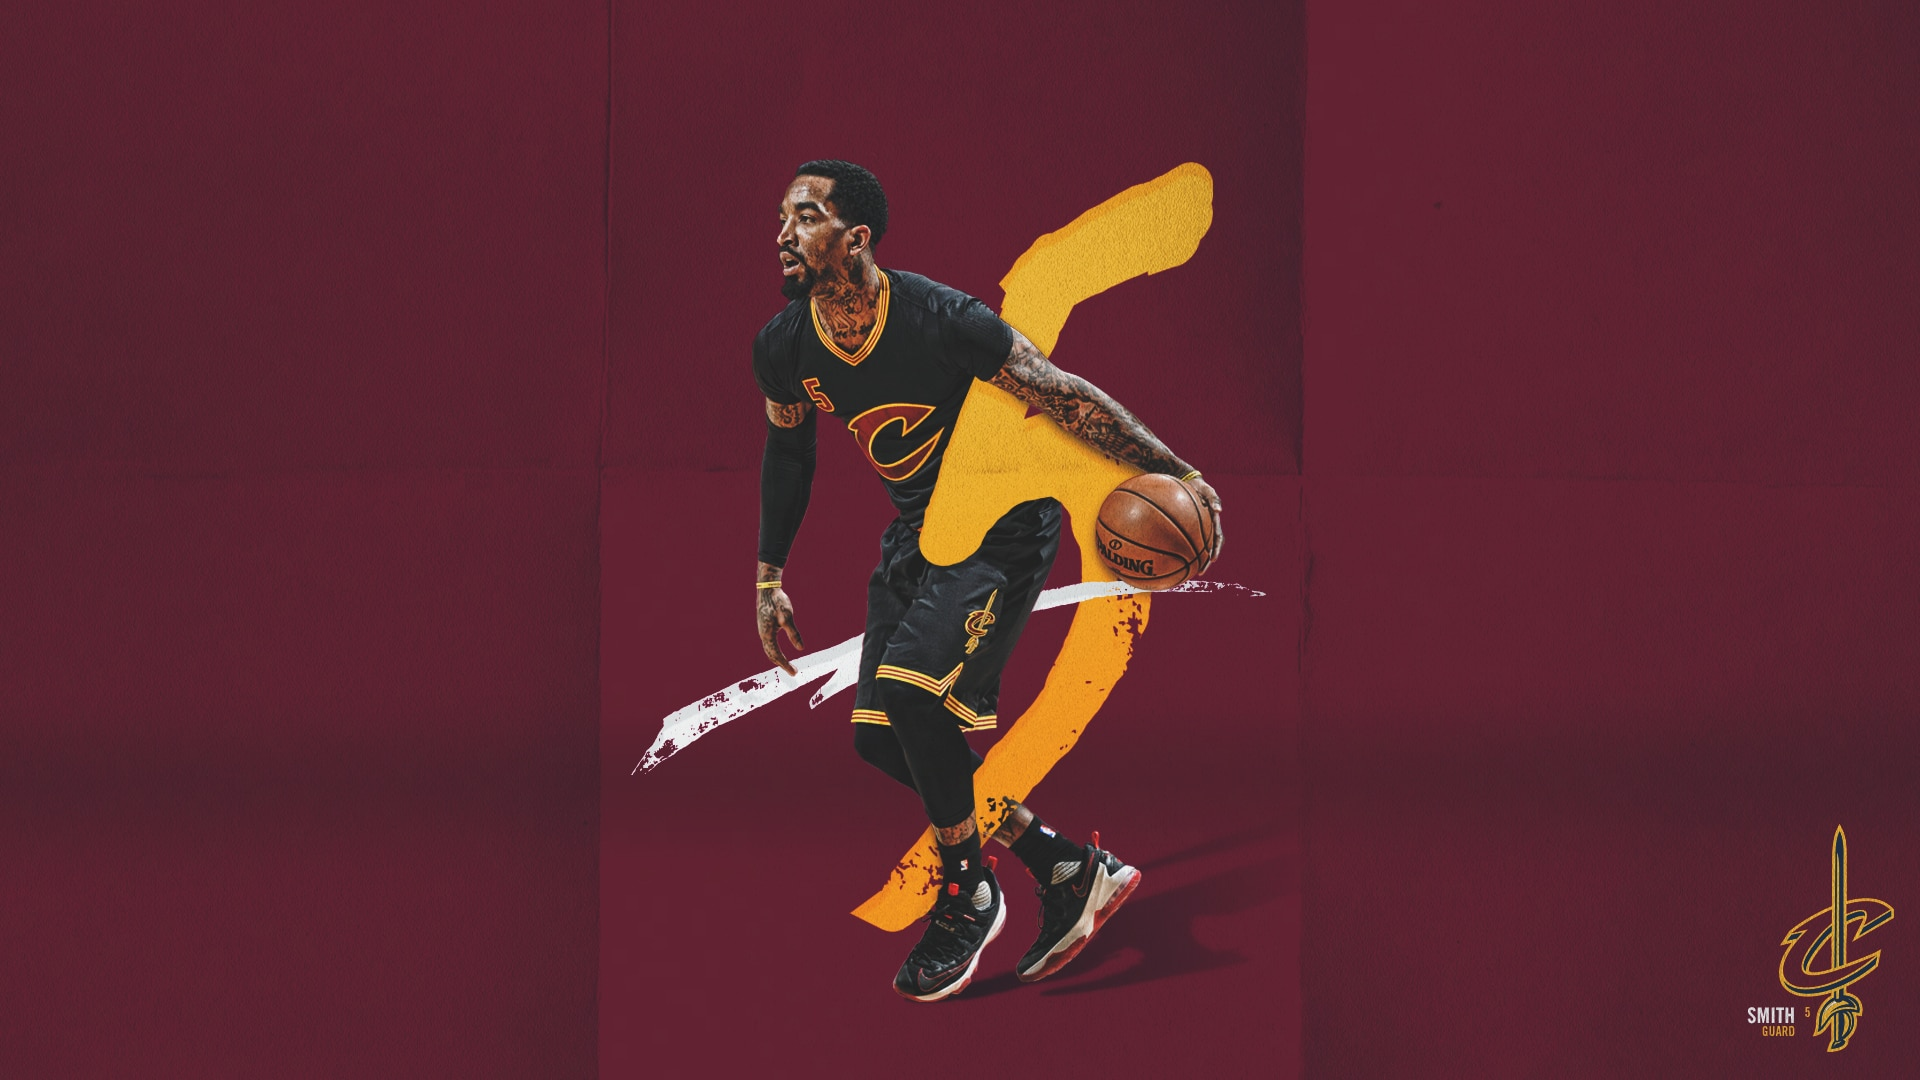 smith wallpaper cavs - photo #29